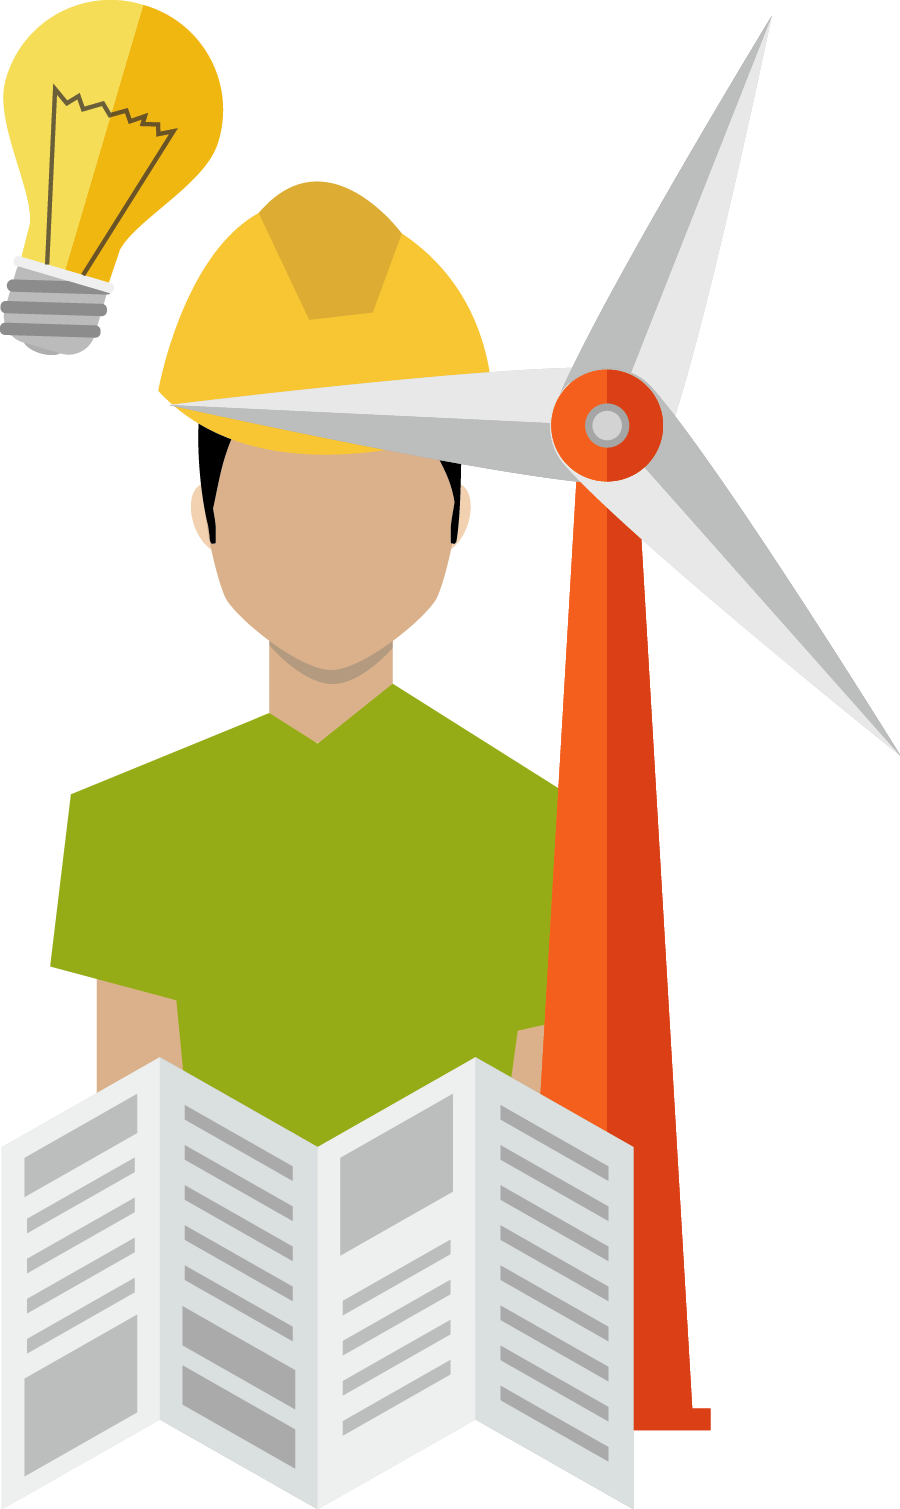 Engineer clipart agricultural engineering. Stem careers by interest